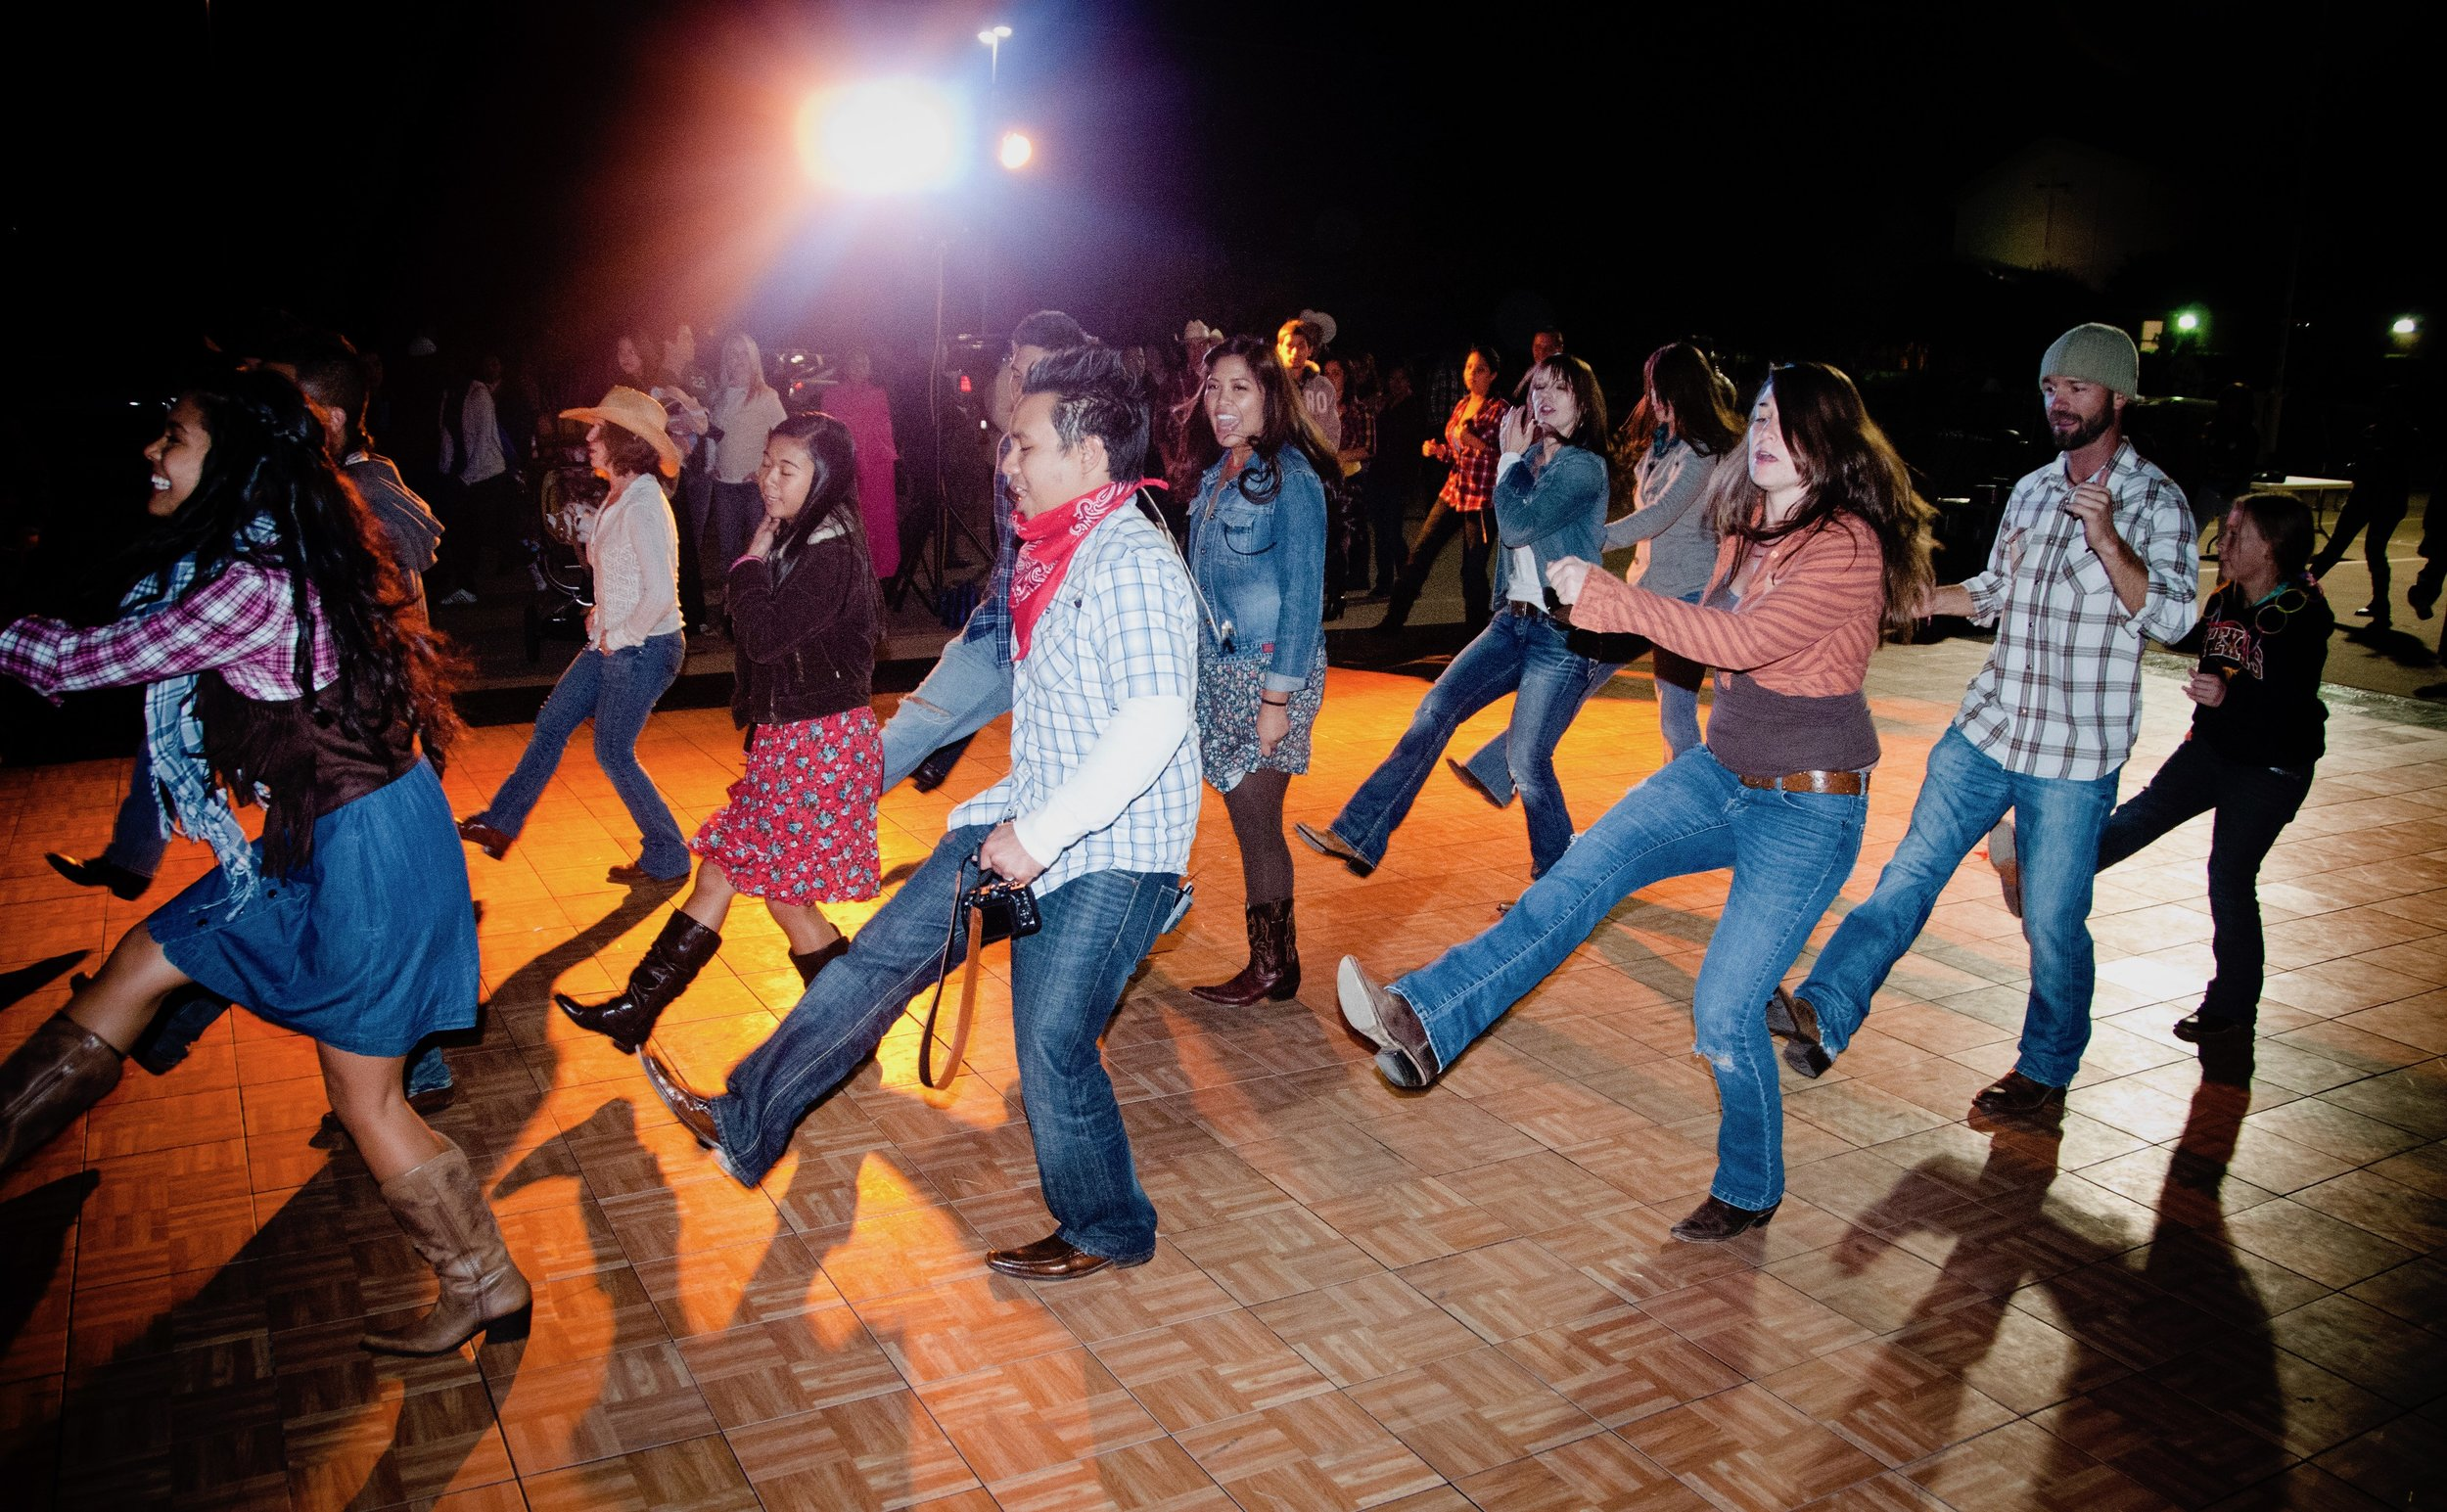 SAVE THE DATE, OCTOBER 19TH! SHINDIG IS BACK!  Polish your boots. Get ready. More details coming at  events.ygchurch.com